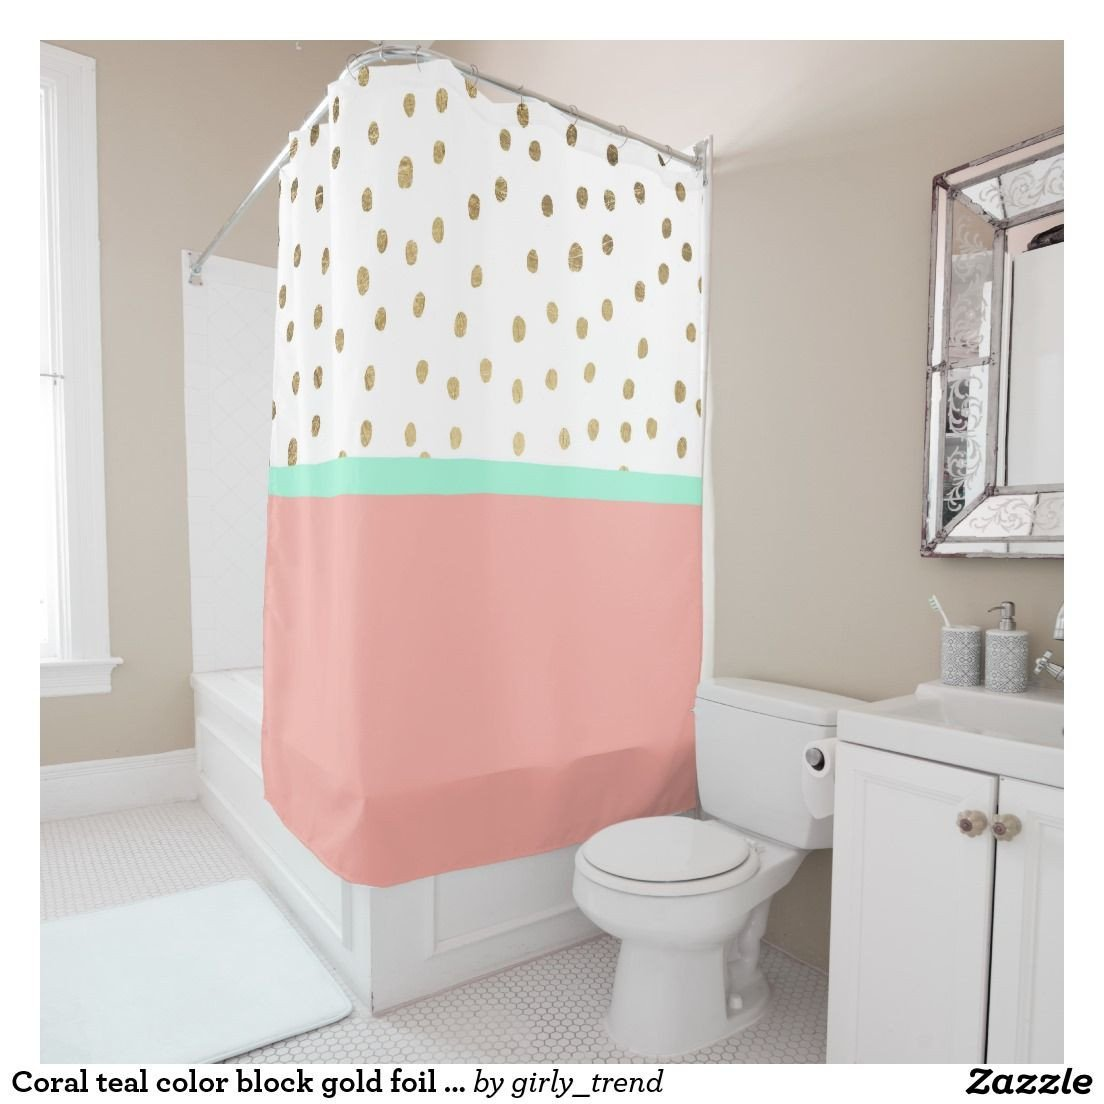 Coral and Teal Bedroom Unique Coral Teal Color Block Gold Foil Polka Dots Shower Curtain